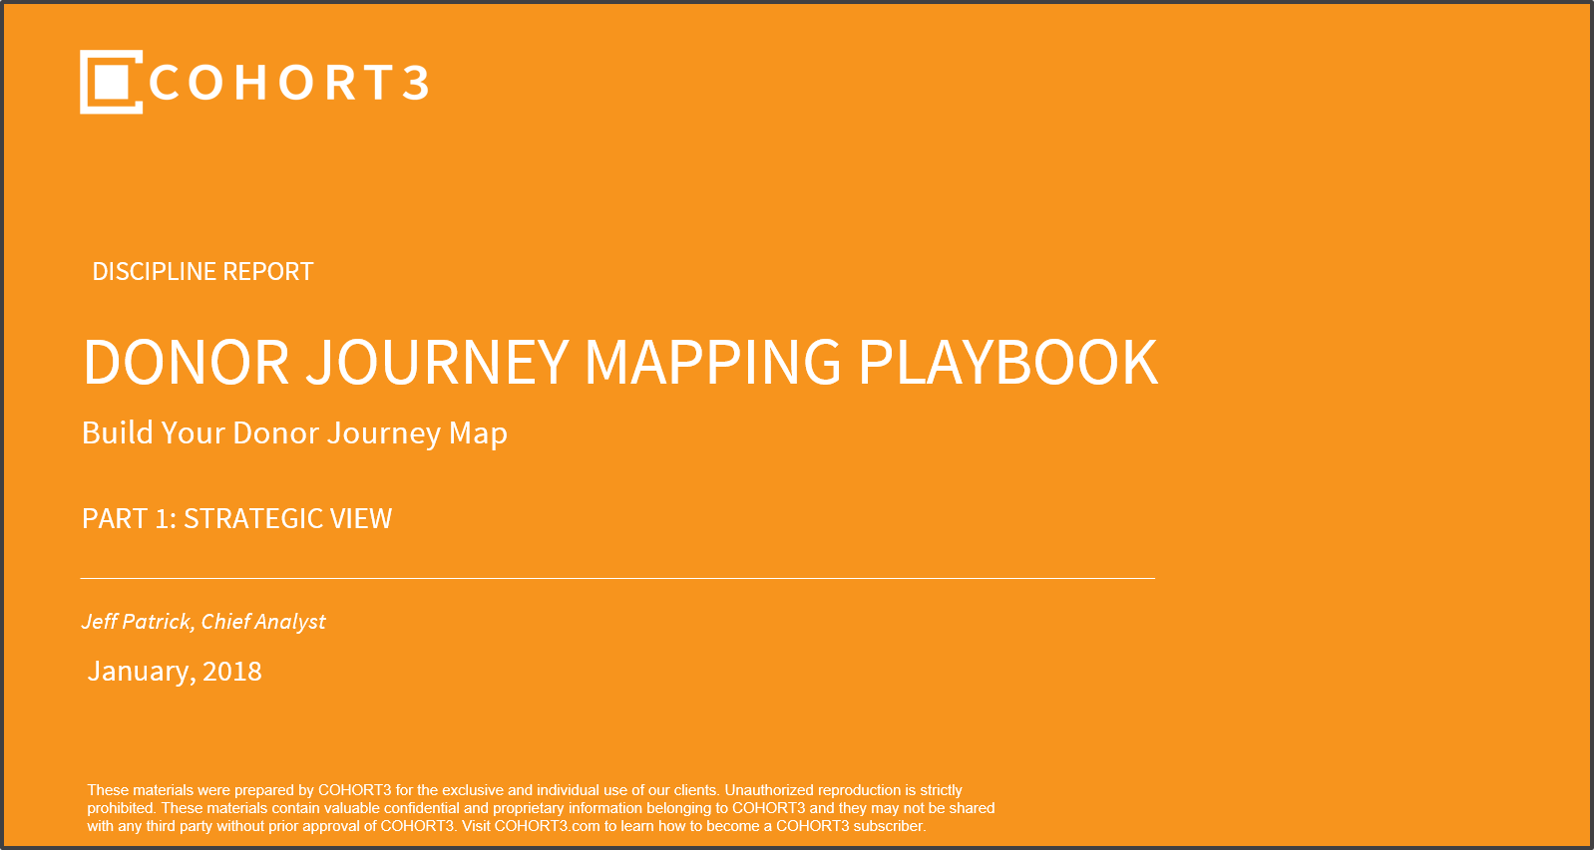 Download the 25-page report to learn more about constructing your own donor journey map.